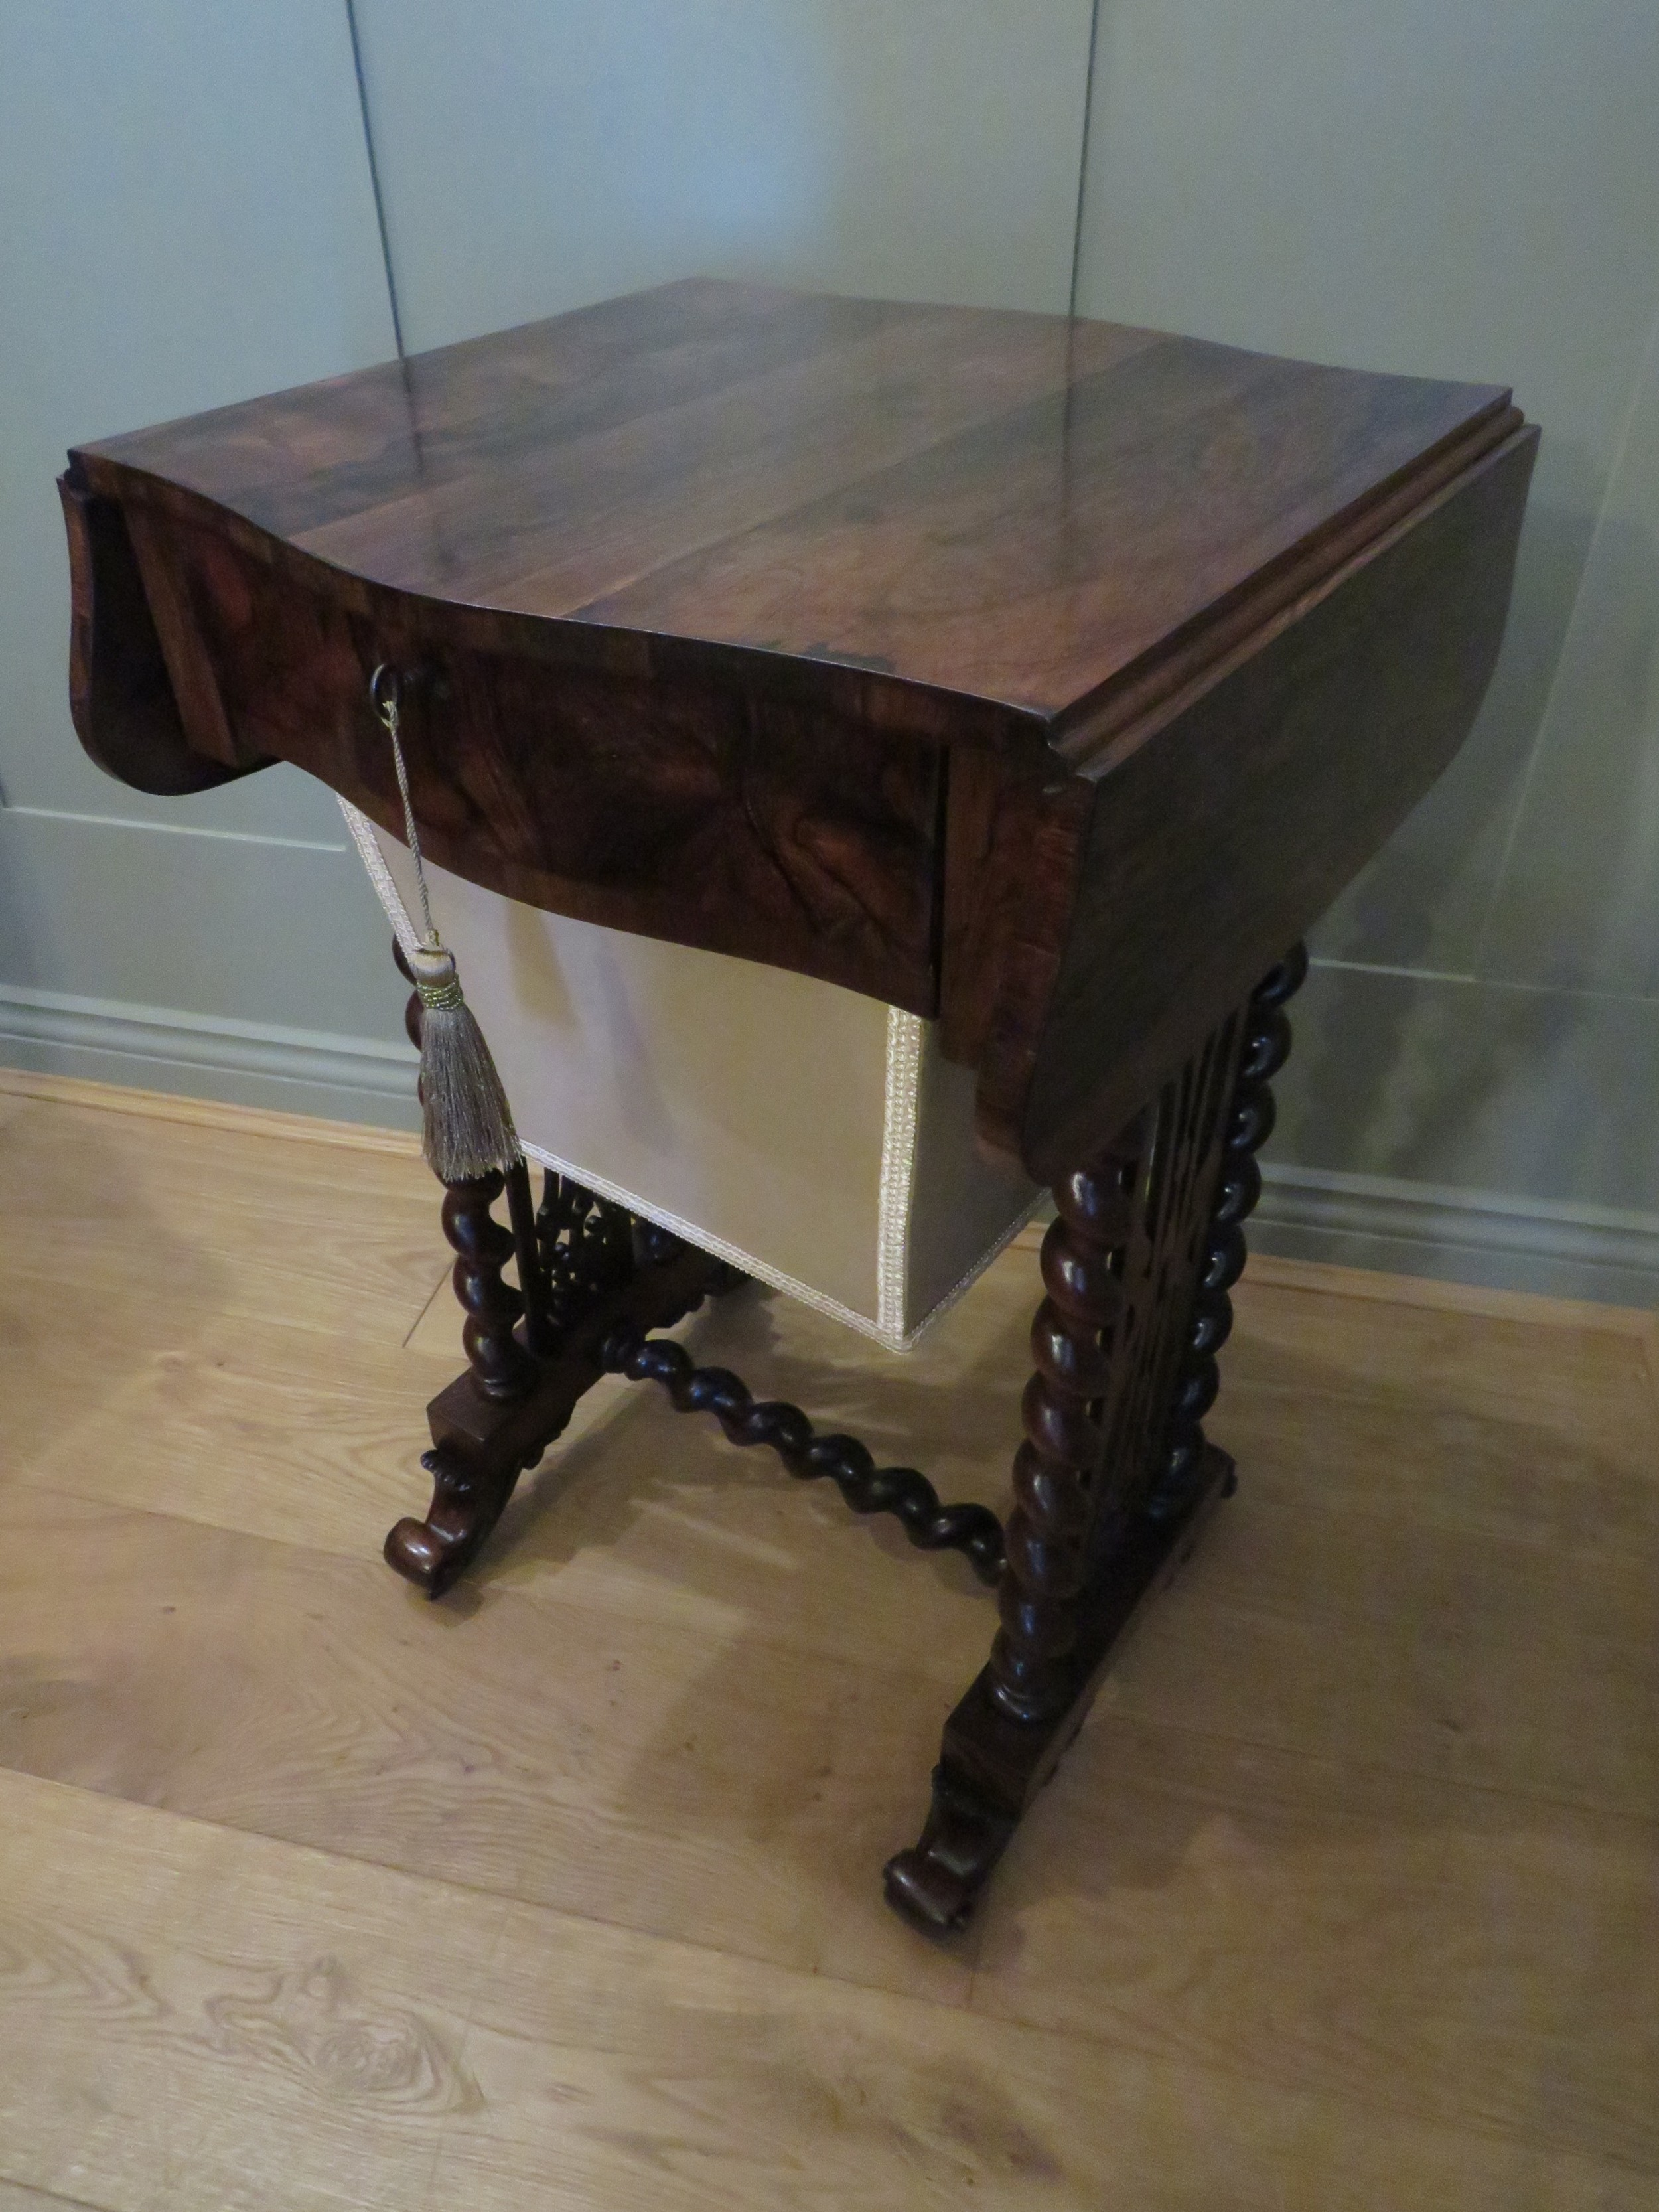 rosewood drop flap work or side table with storage basket